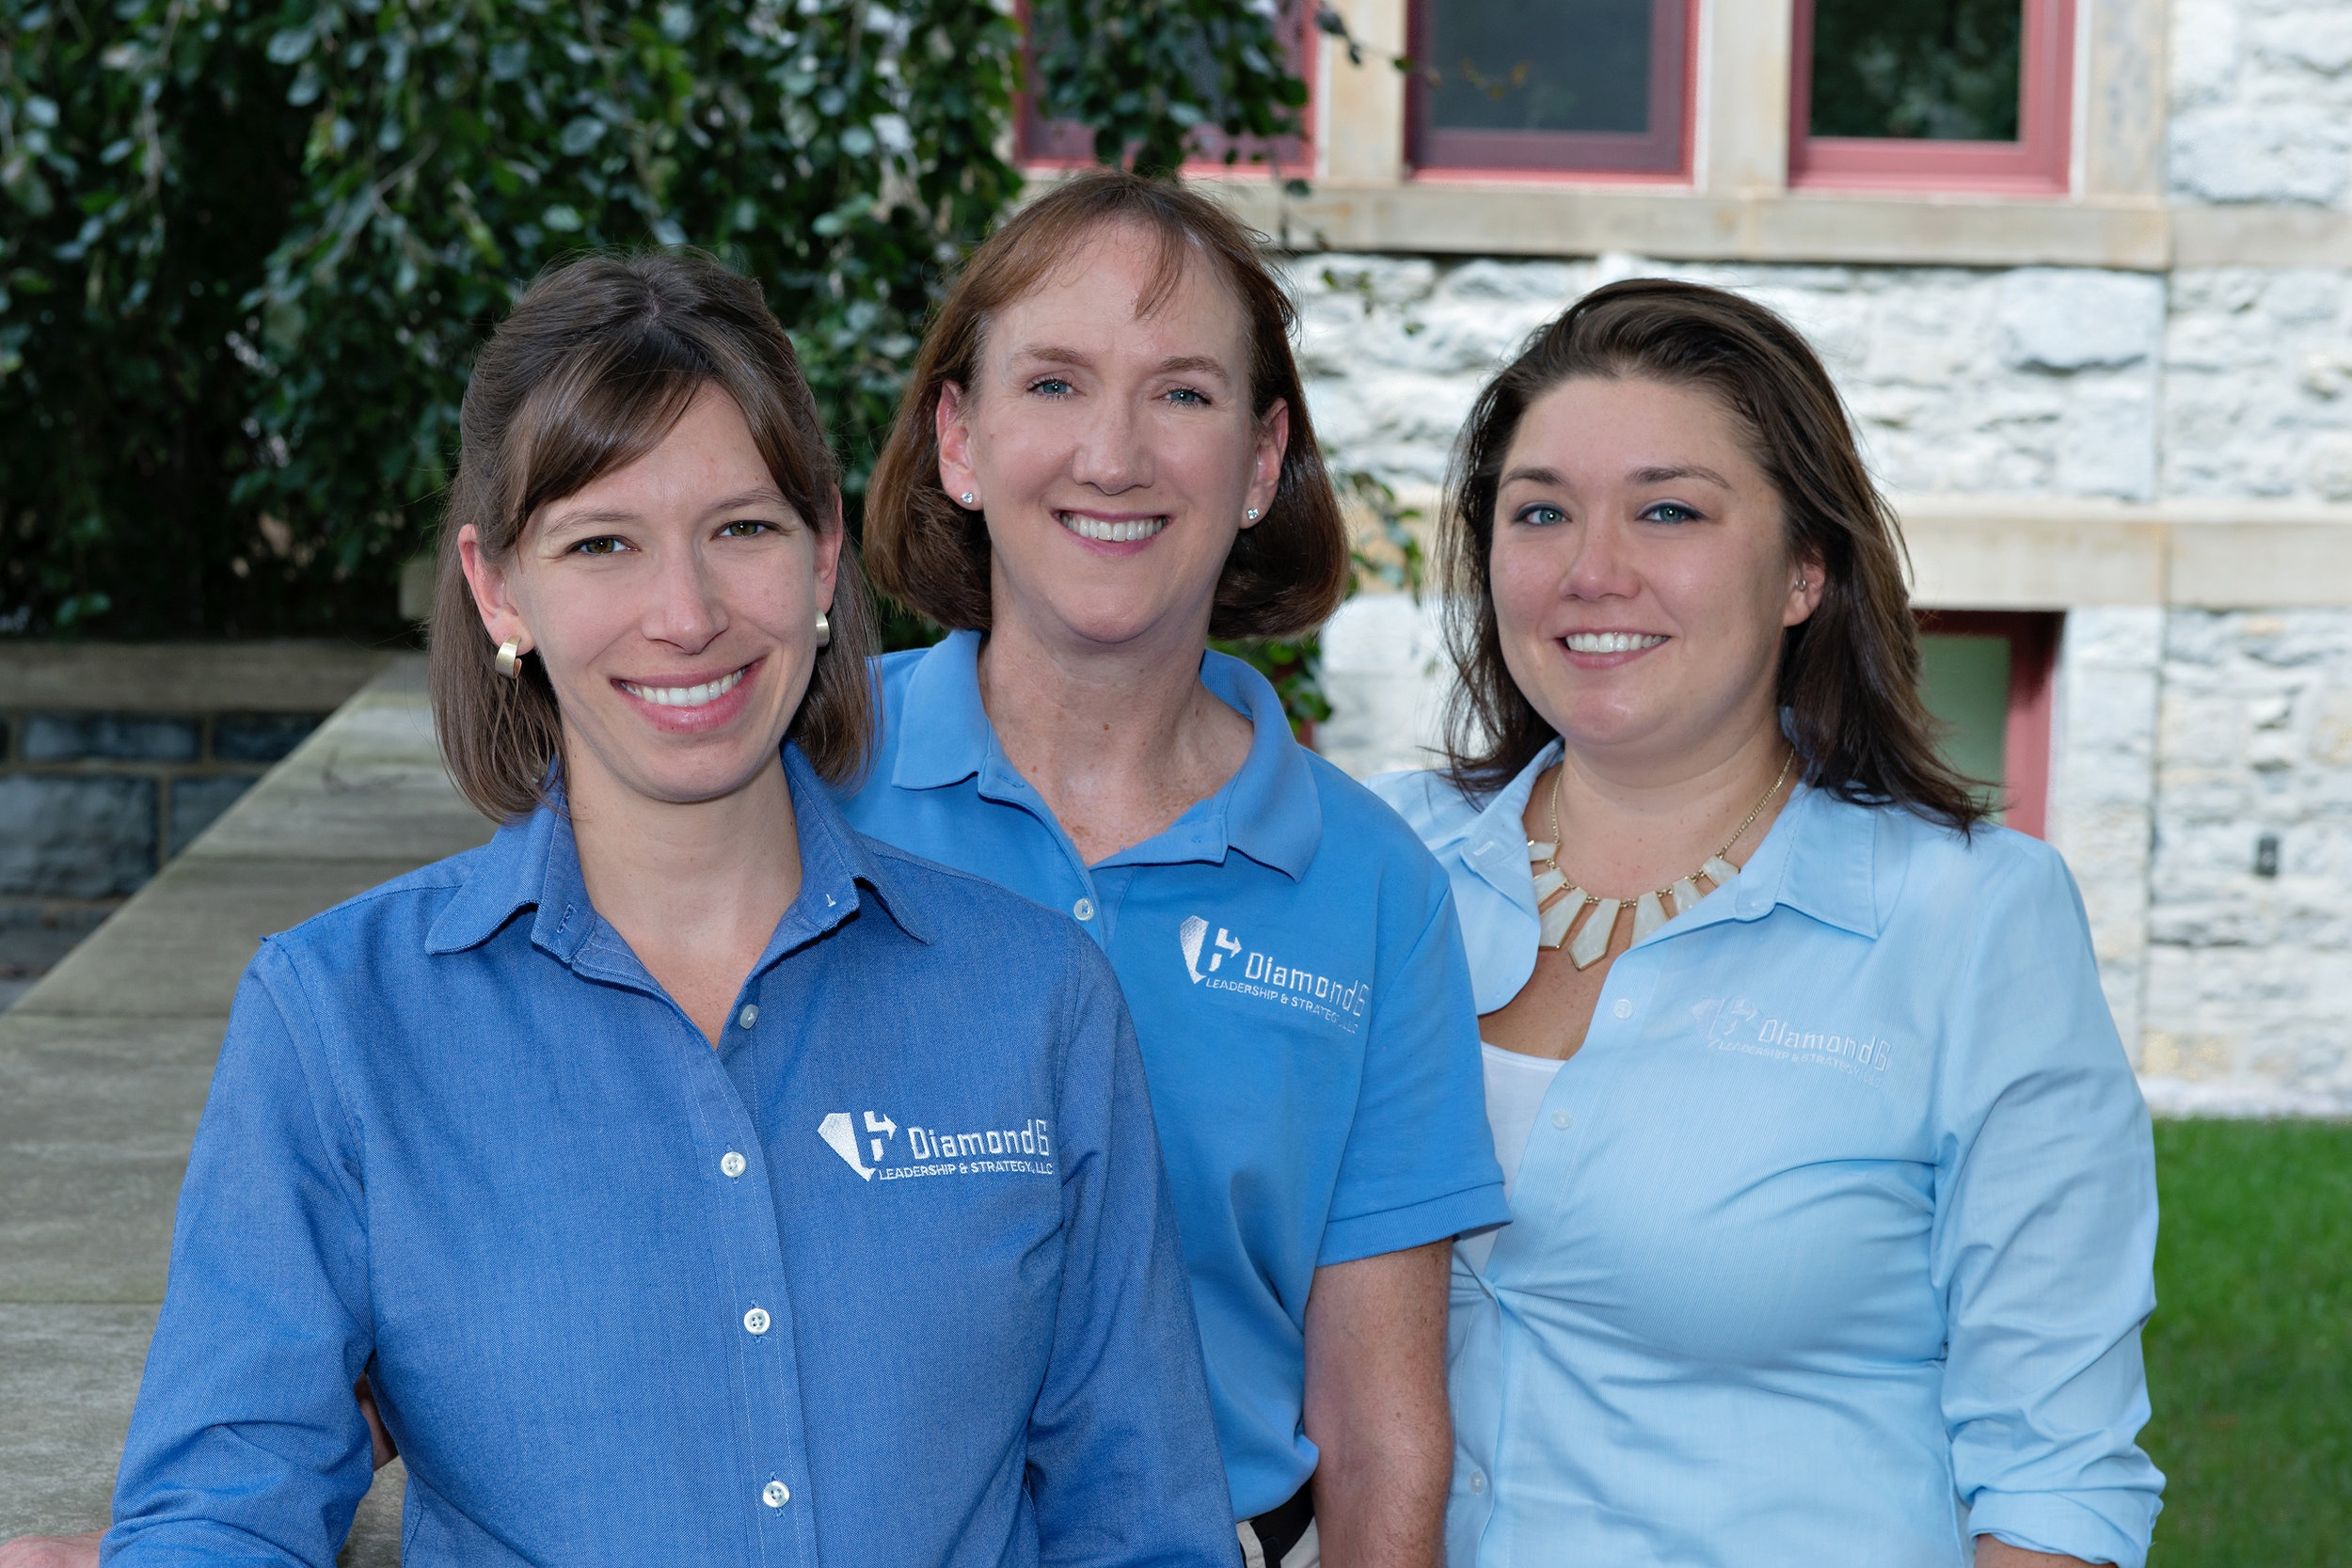 Tanya McCausland, COO / Holly Tiley, Office & Events Manager / Bri Buffington, Marketing & Communications Manager